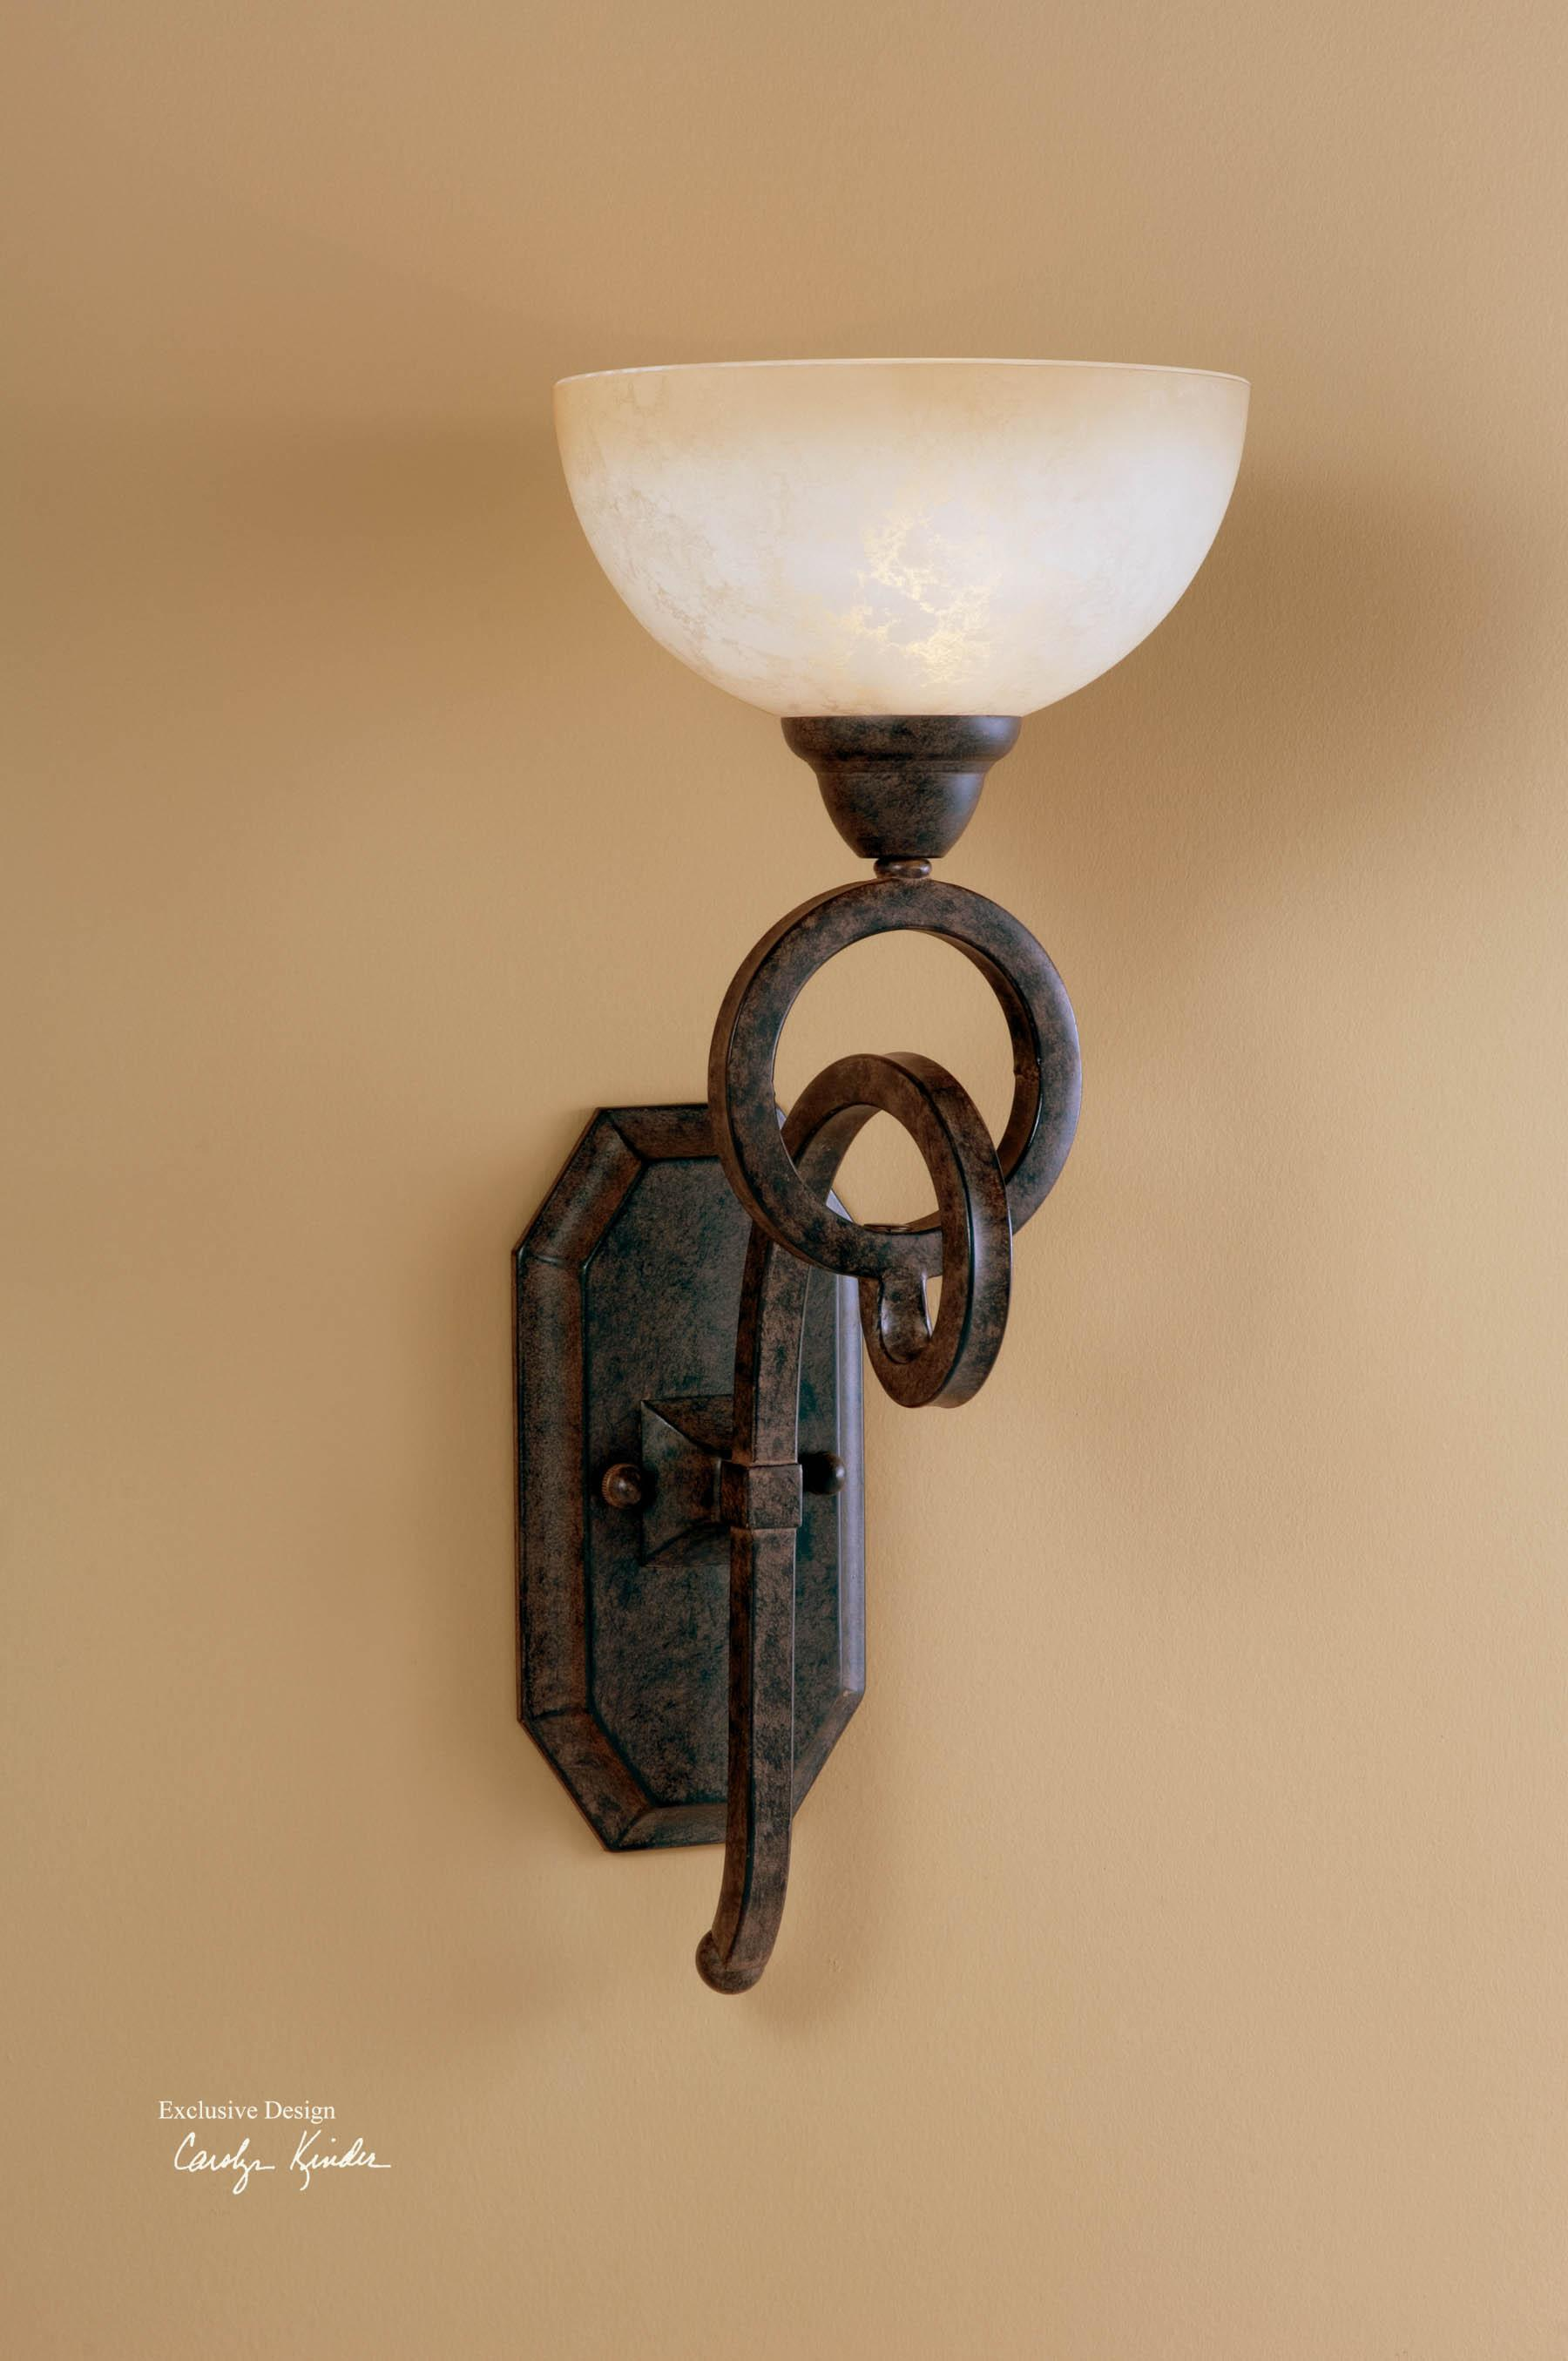 Uttermost Lighting Fixtures Legato Wall Sconce - Item Number: 22430